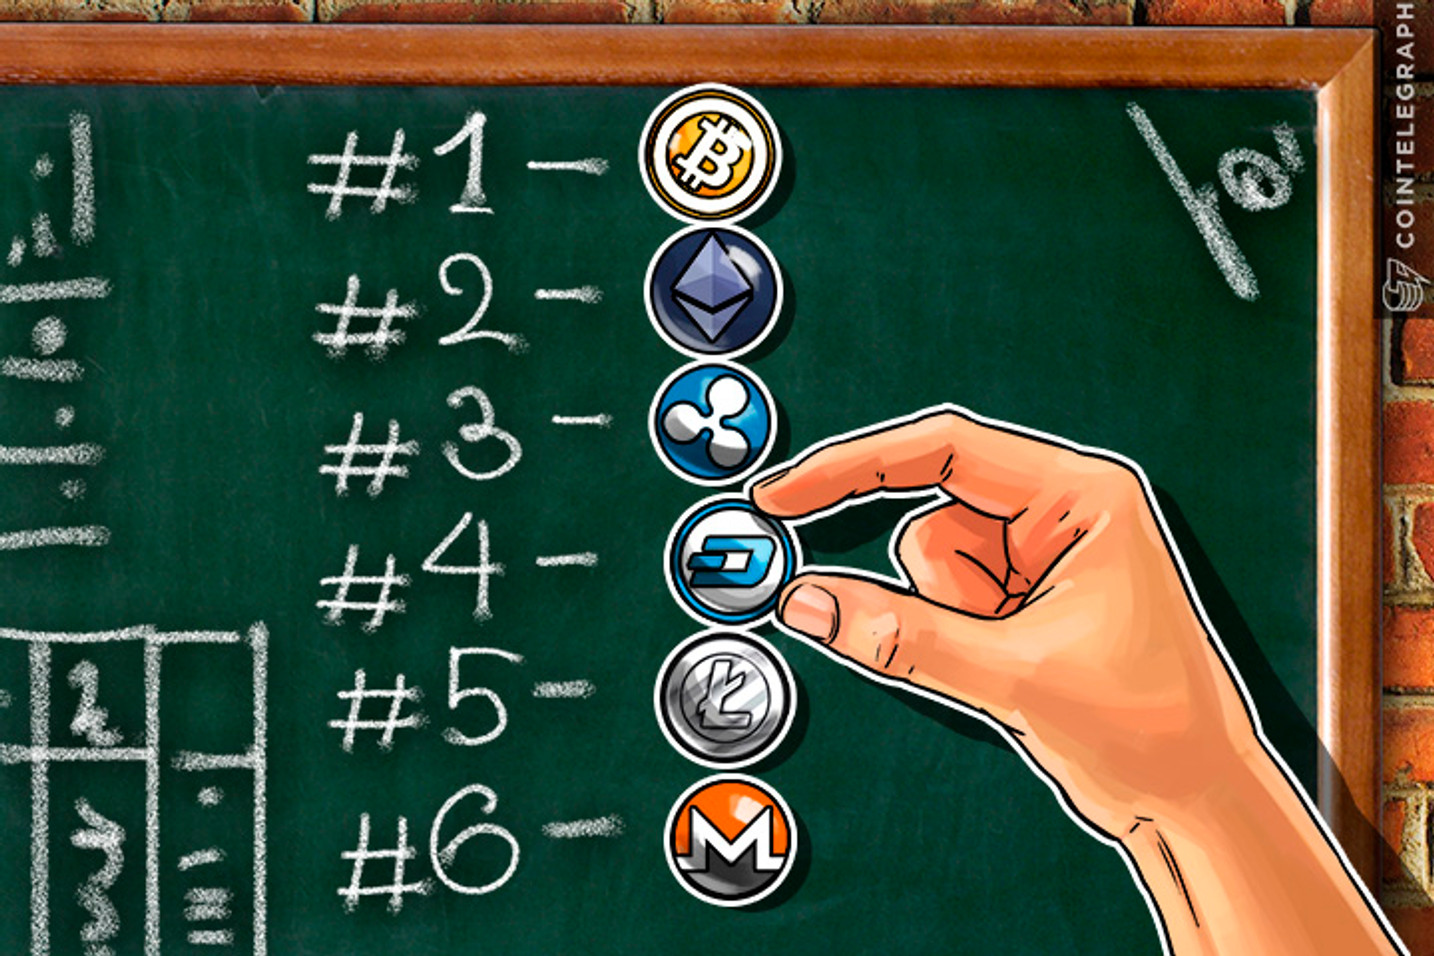 Dash Passes Litecoin and Monero to Claim Number 4 Cryptocurrency Status